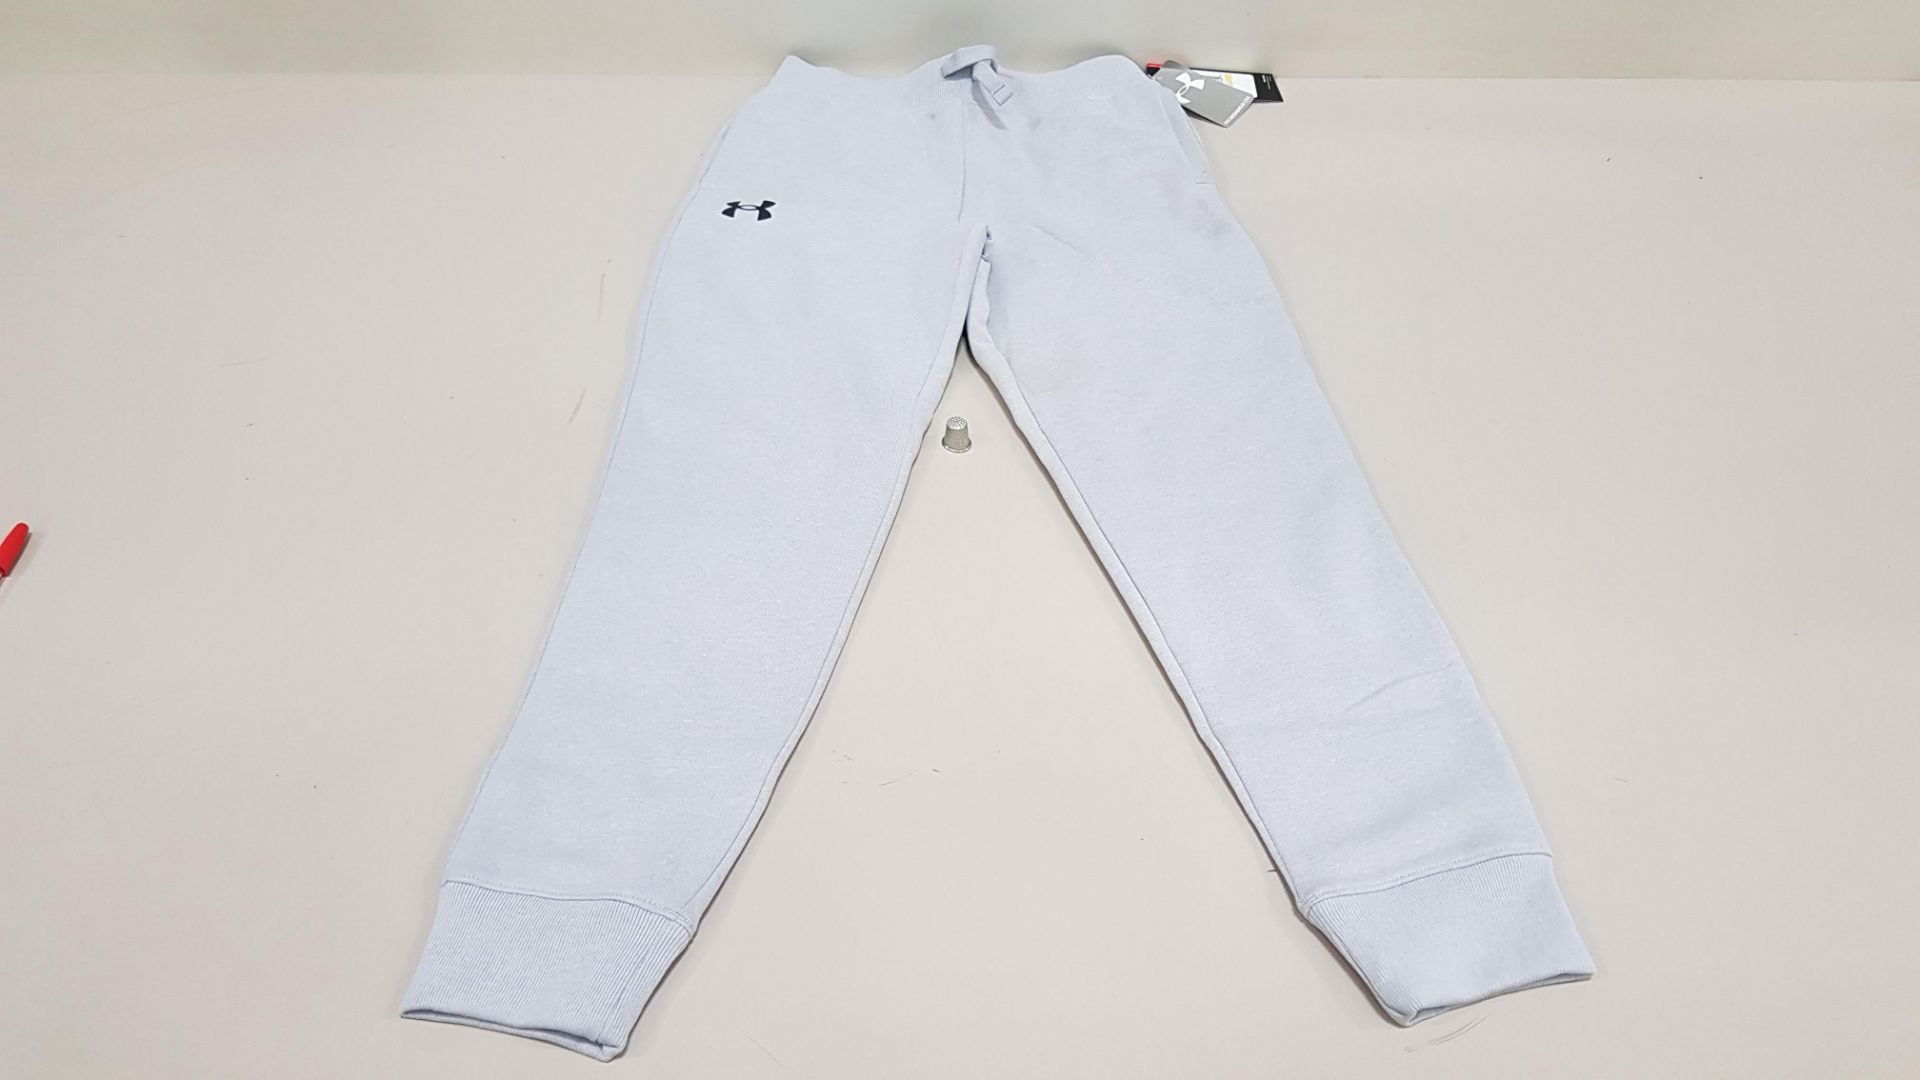 10 X BRAND NEW UNDER ARMOUR BOYS PANTS SIZE YMD/M